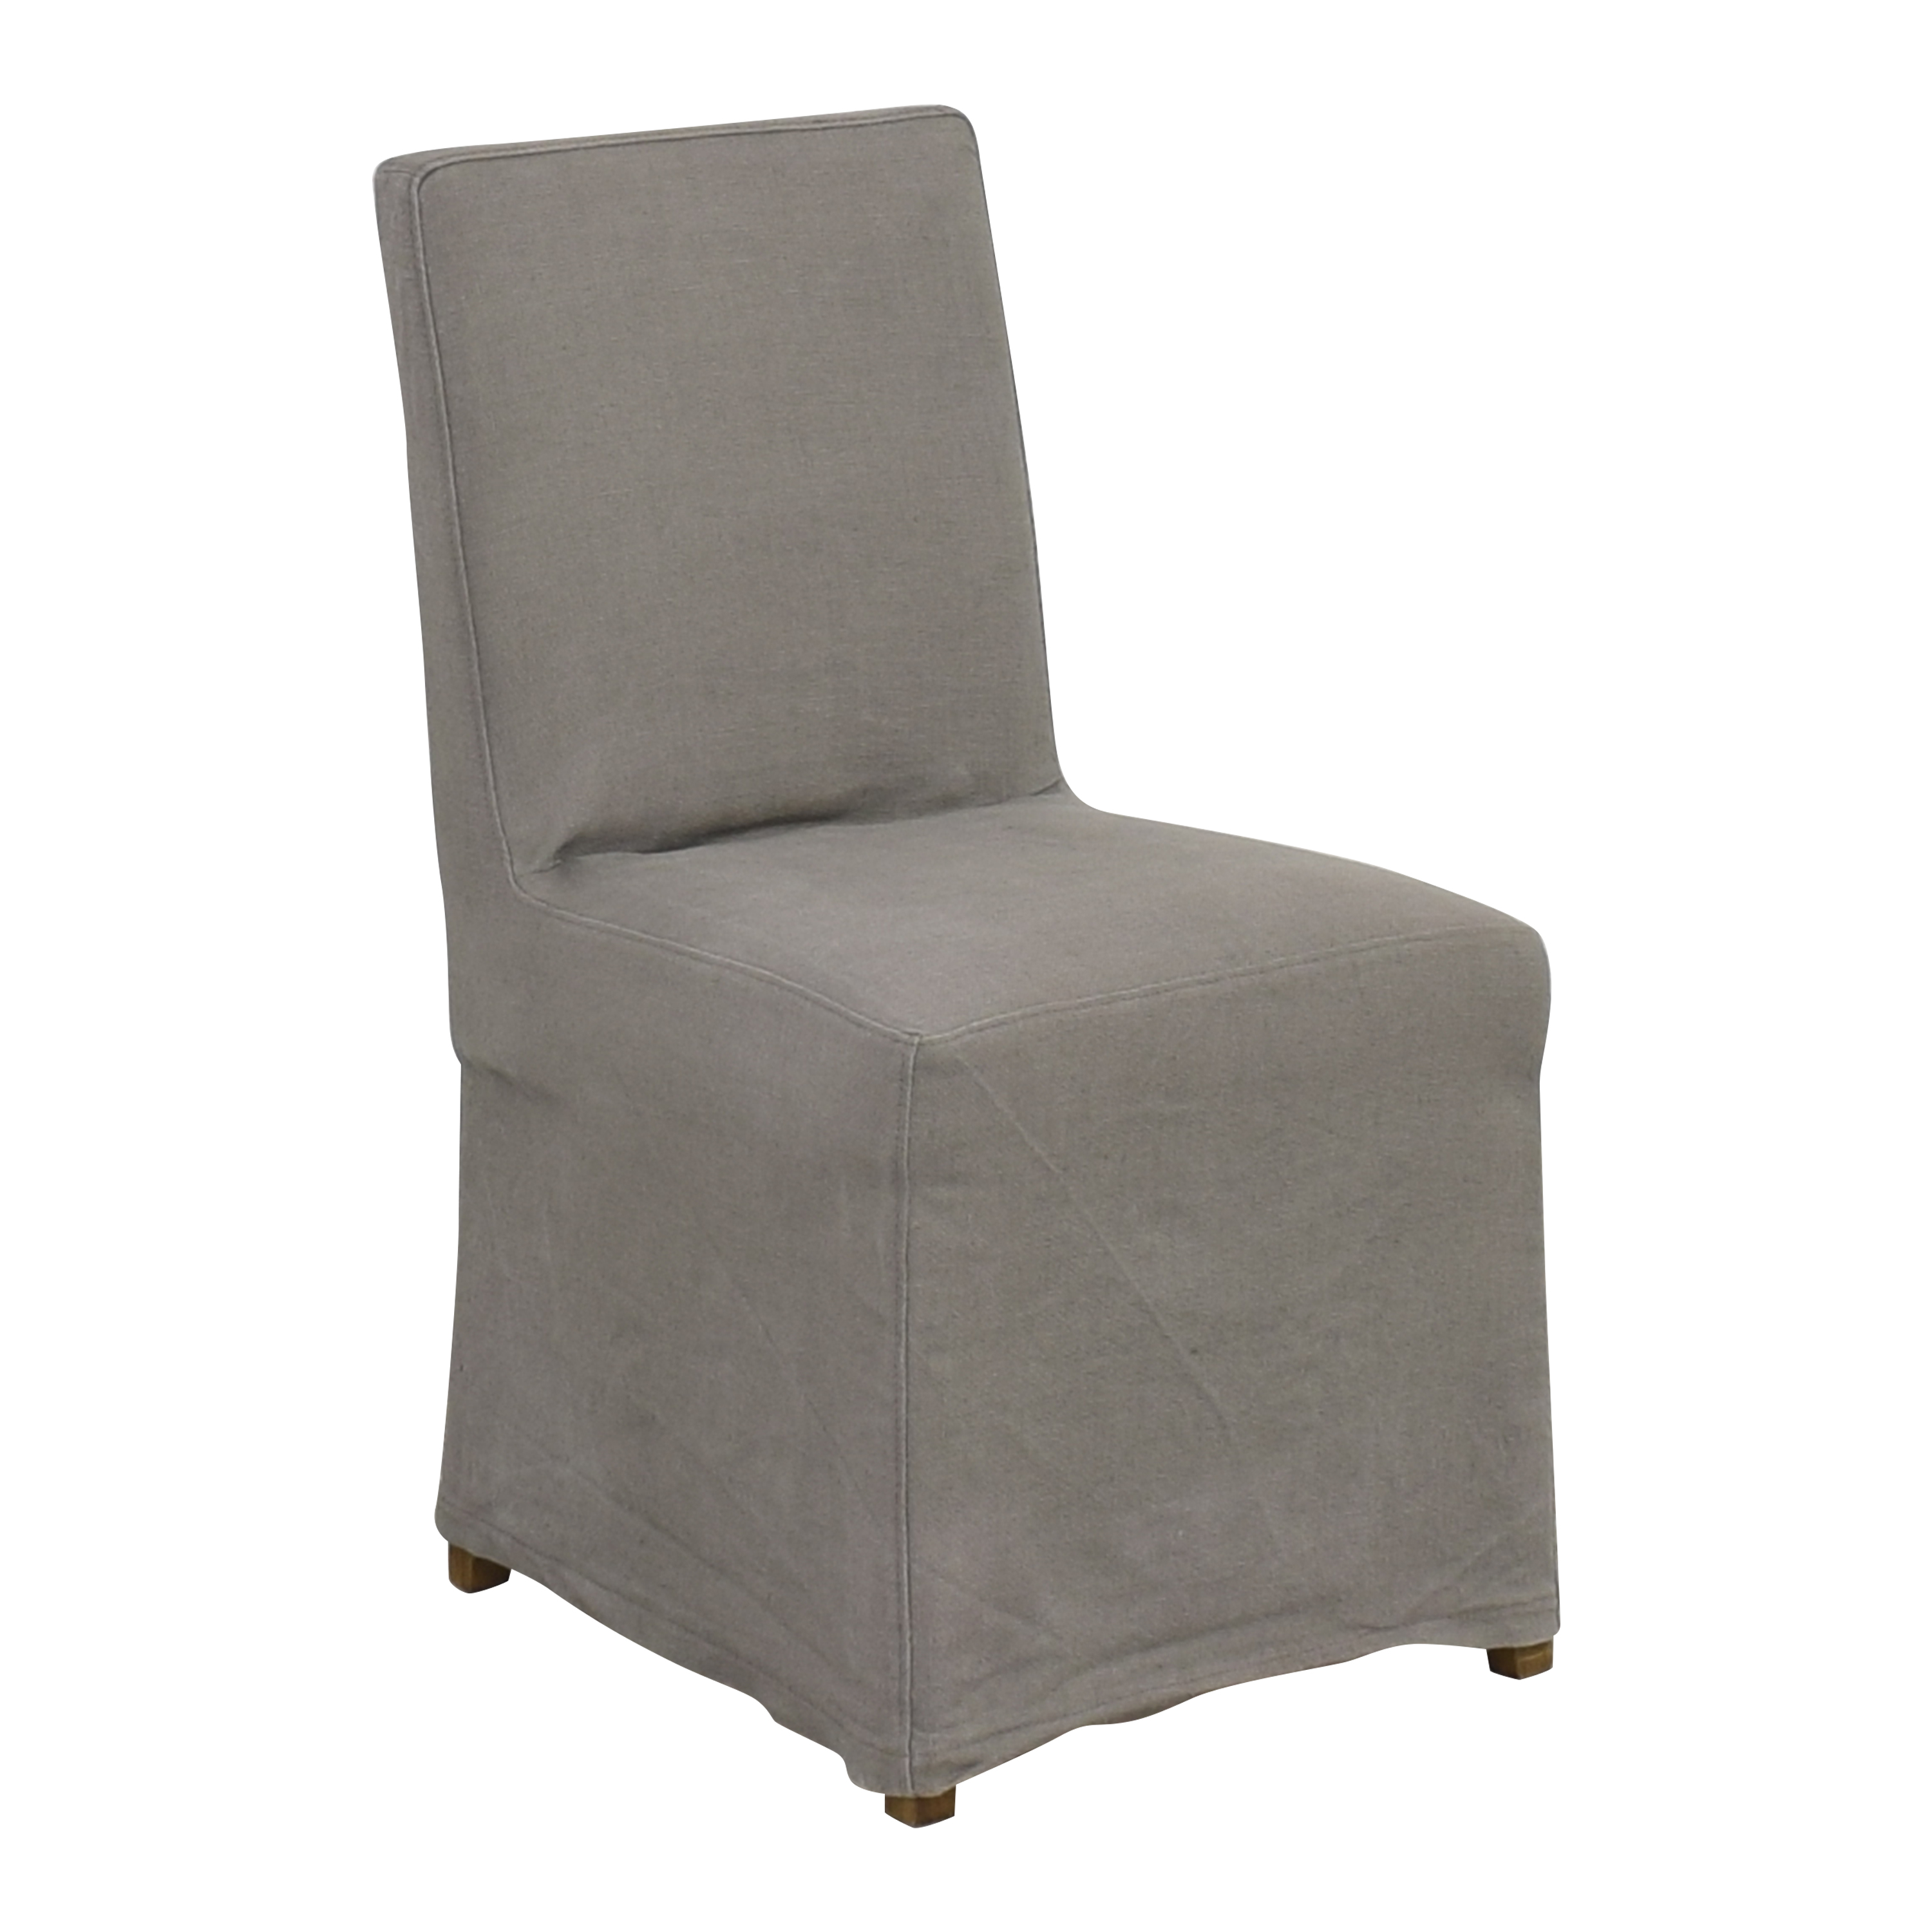 Restoration Hardware Restoration Hardware Parsons Hudson Slipcovered Side Chair second hand